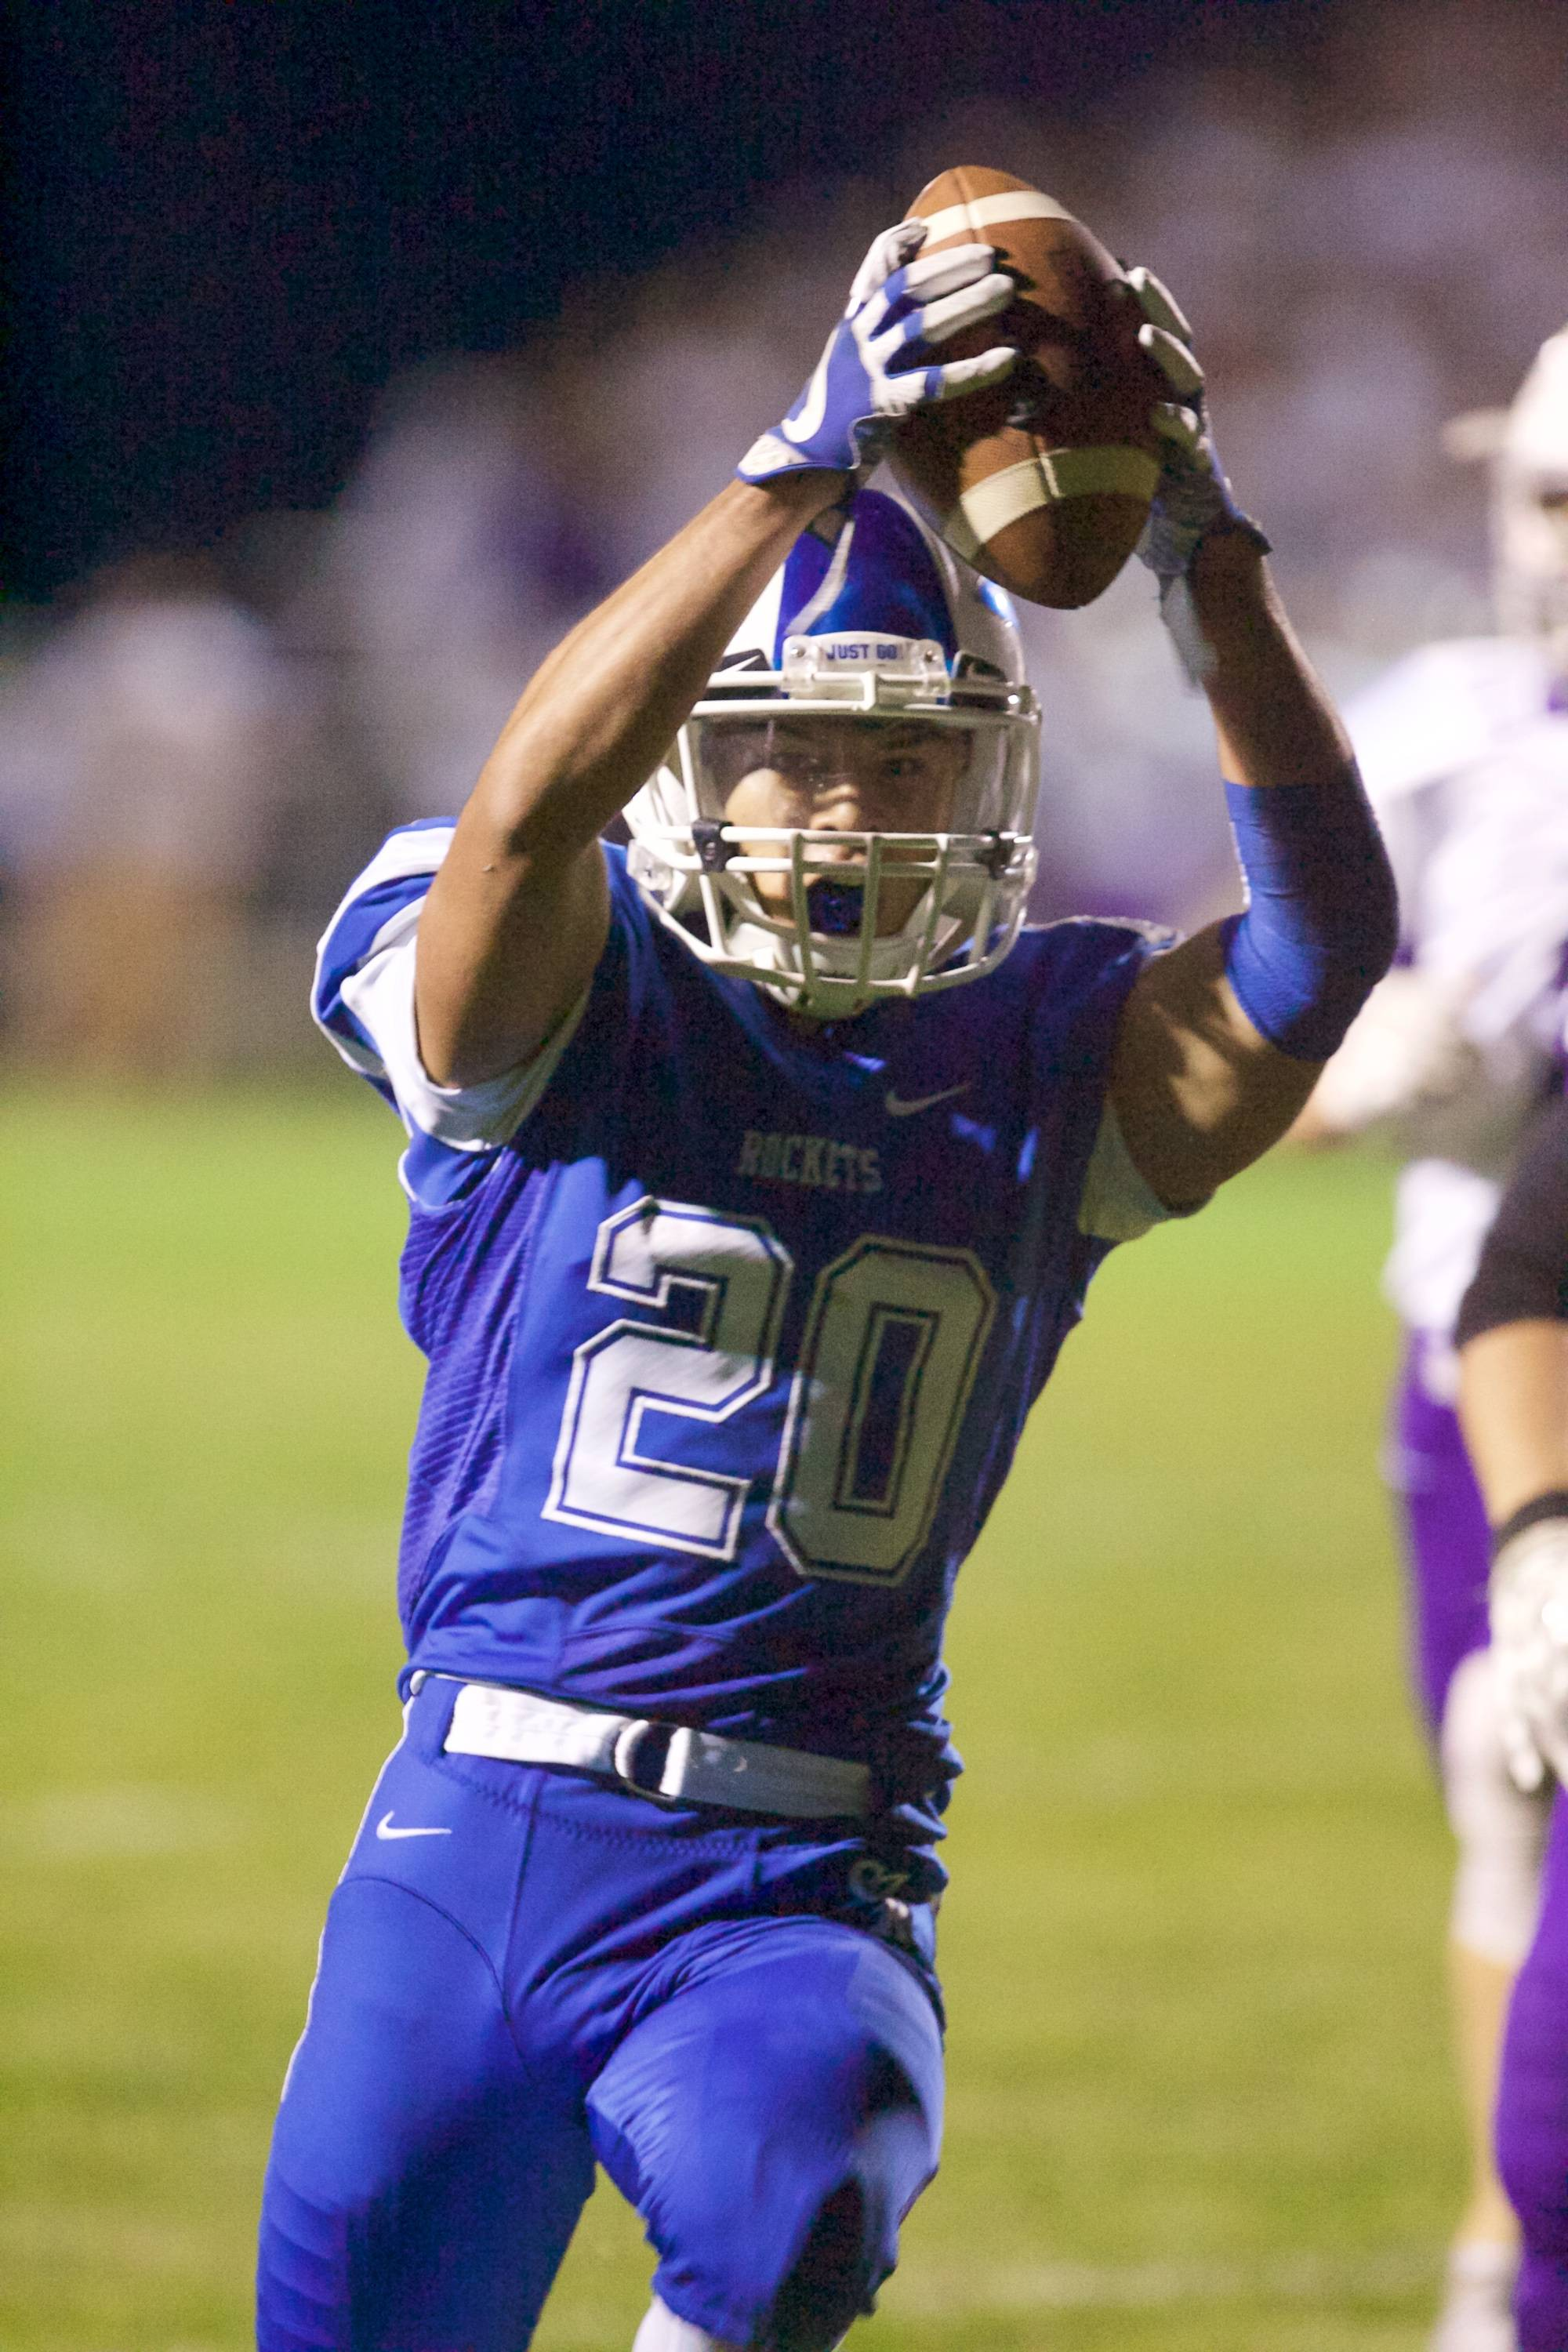 Burlington Central's Nicholas Termini carries the ball for a touchdown against Hampshire on Sept 1 in Burlington.